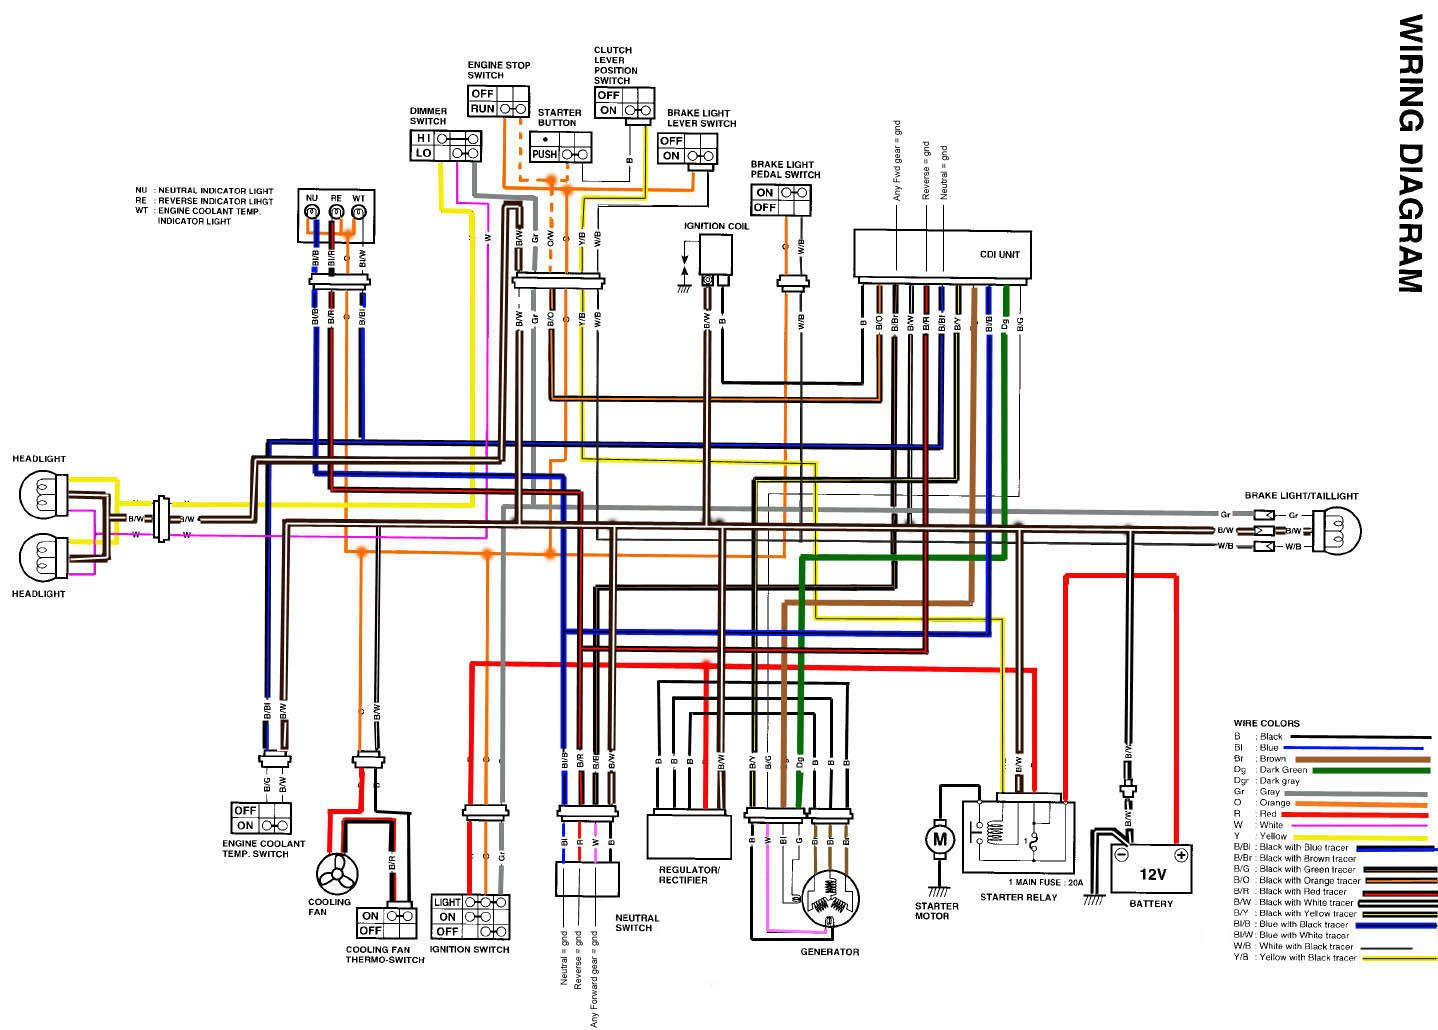 wiring diagram for suzuki king quad wiring diagram usedsuzuki quad wiring diagram wiring diagram load king [ 1438 x 1030 Pixel ]